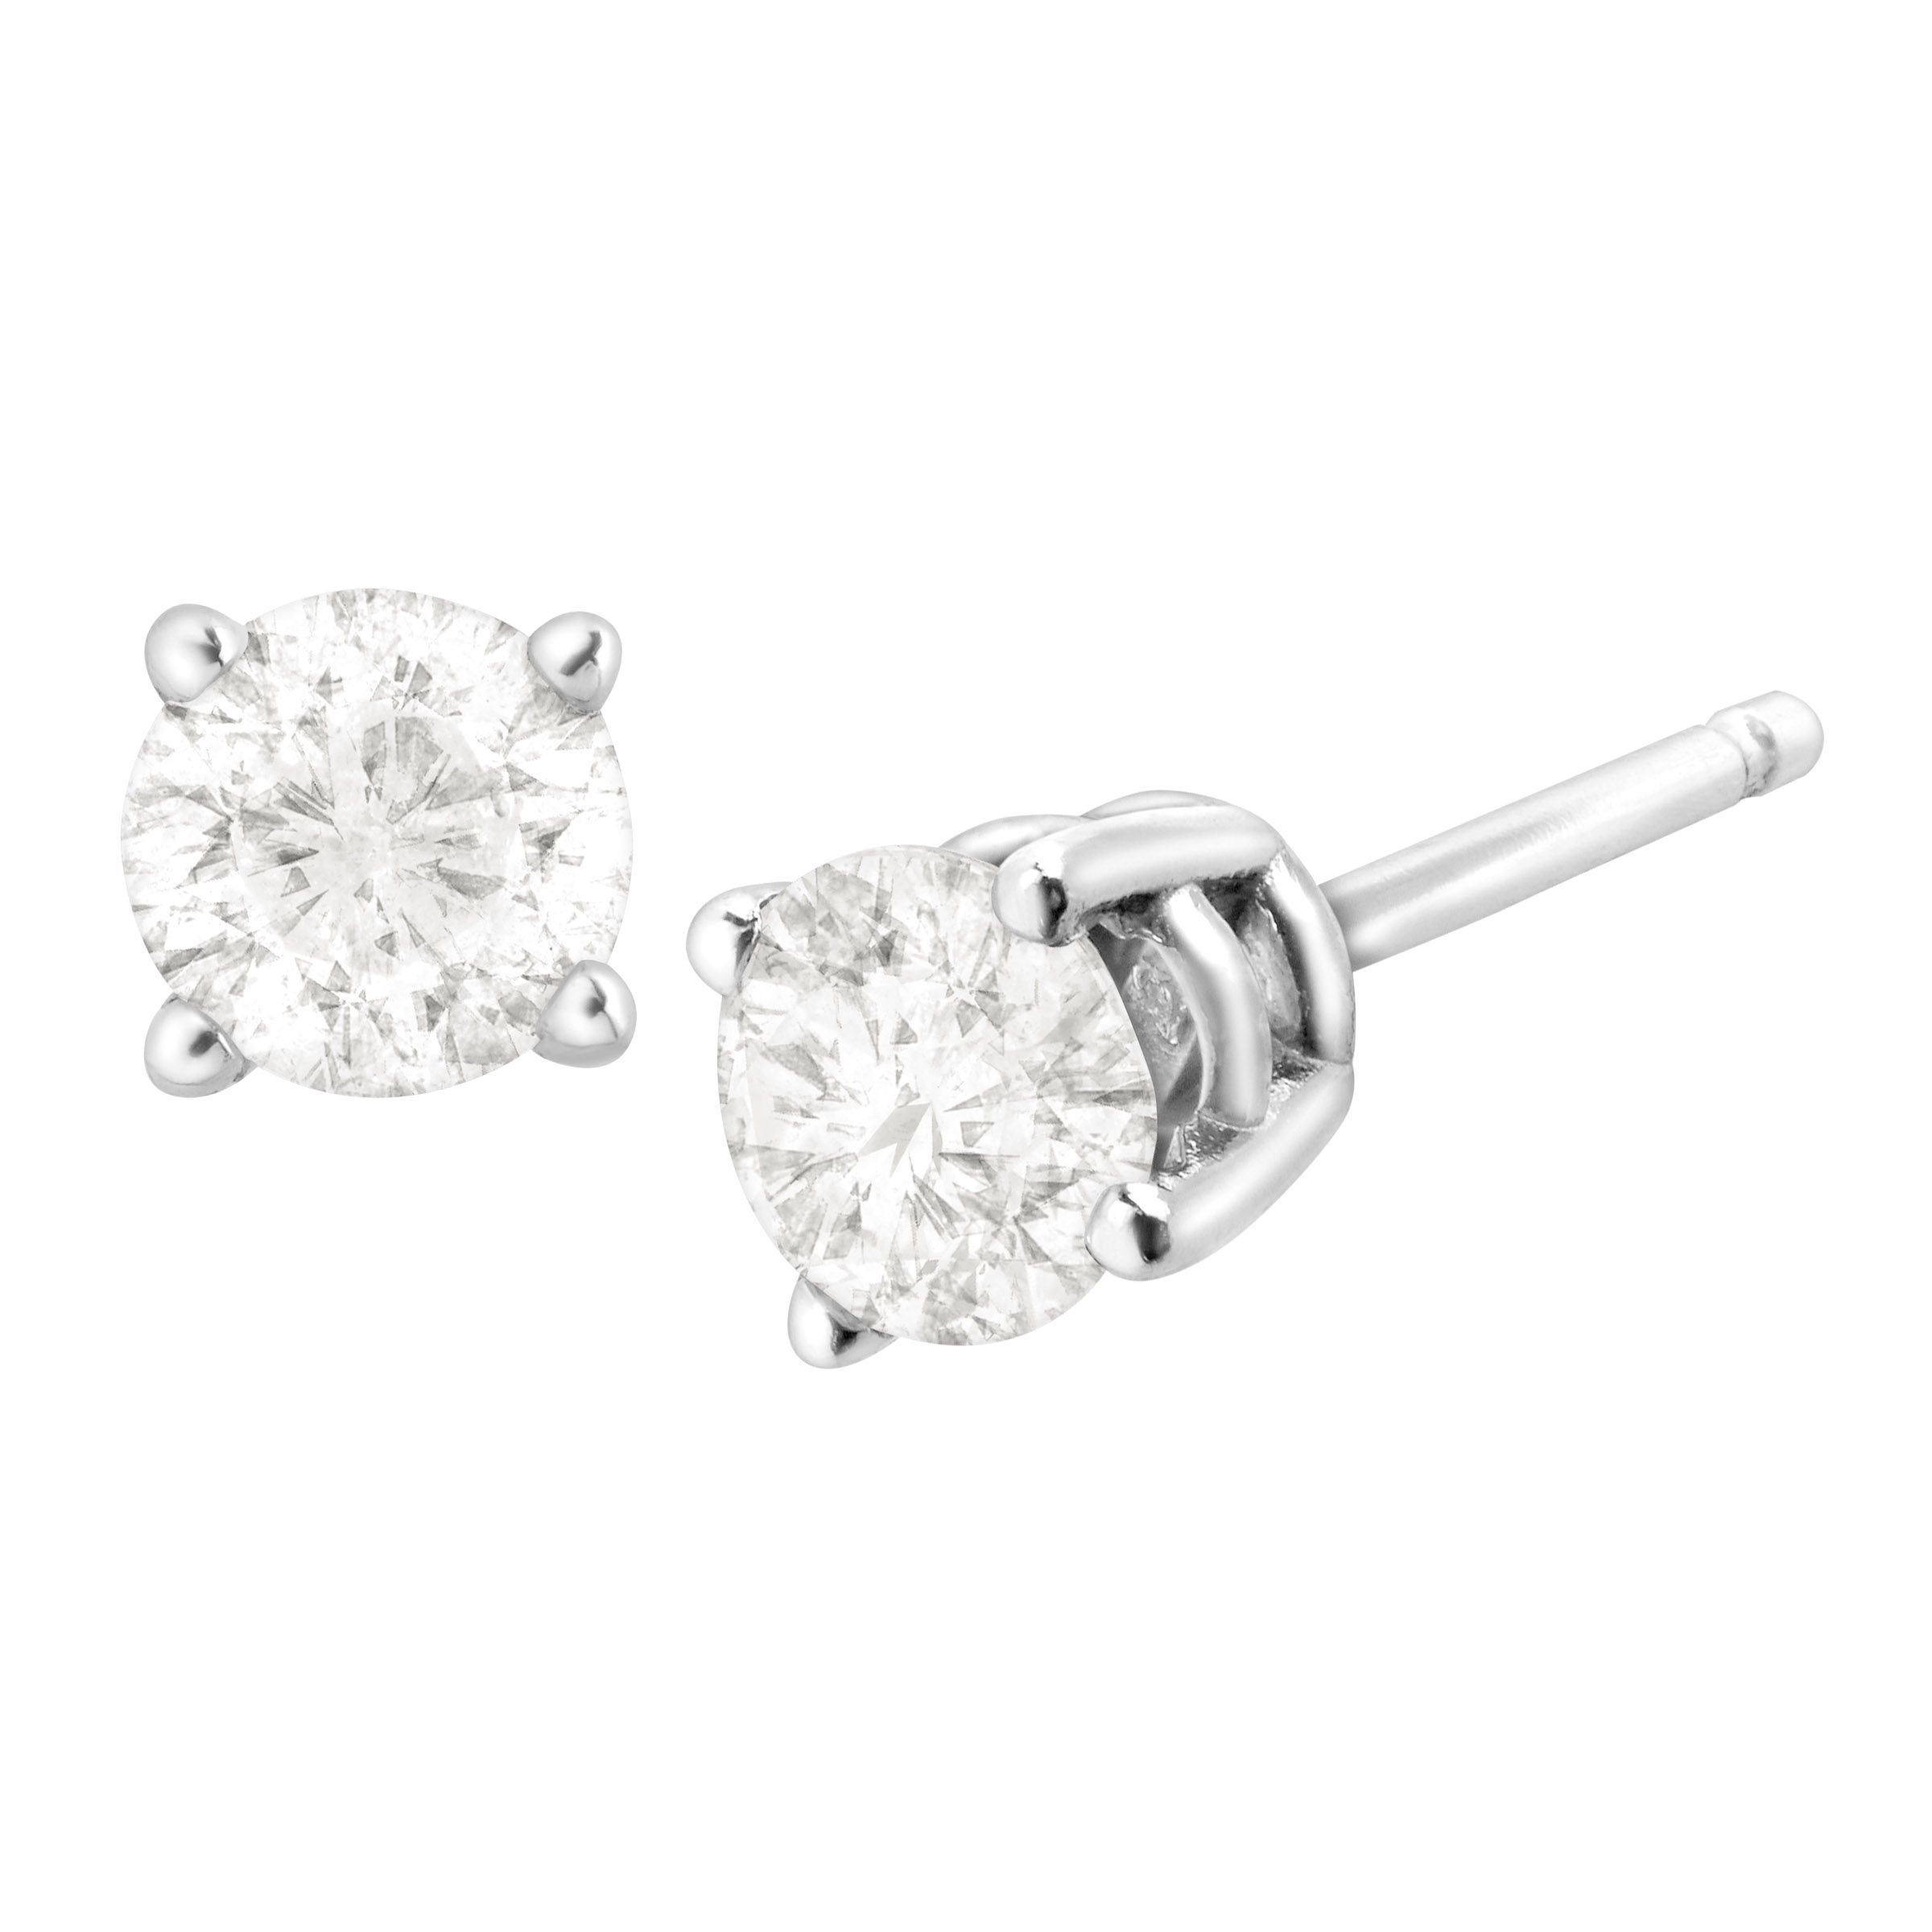 sophia stud earrings sophiastuds diamond kent ahalife sk jewellery wd product rg selin